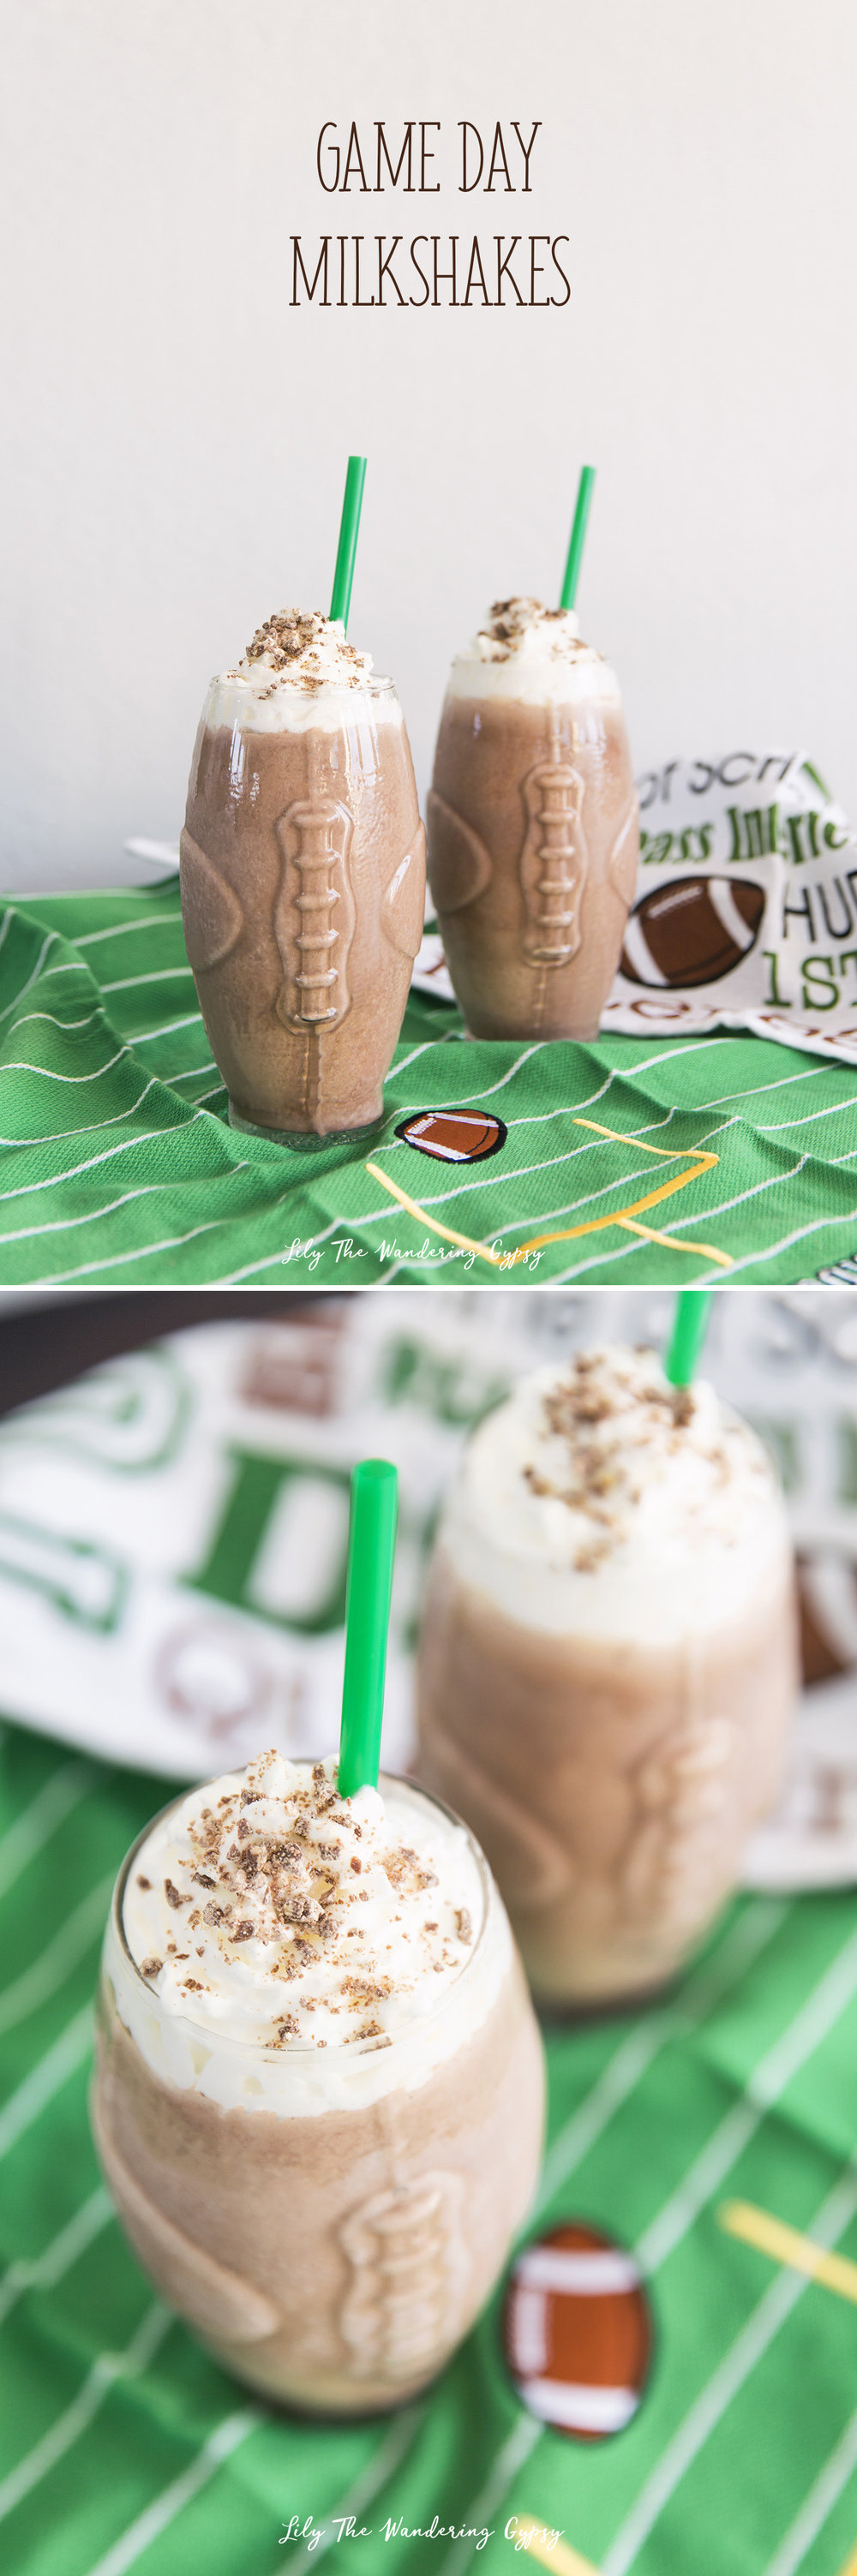 game day milkshakes recipe